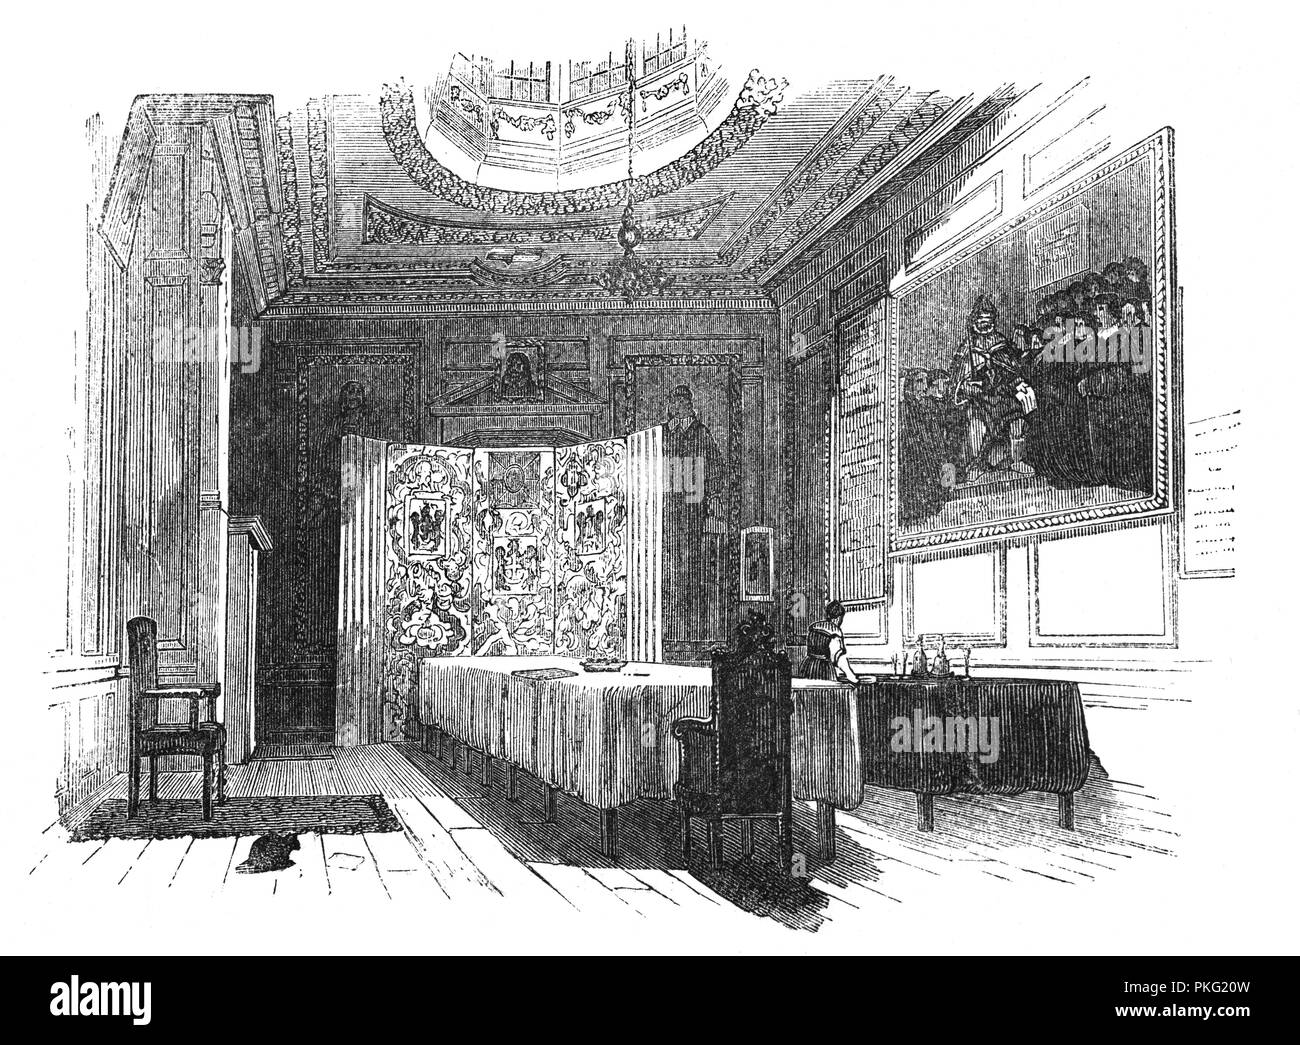 The courtroom of the Worshipful Company of Barbers, one of the Livery Companies of the City of London. The Fellowship of Surgeons merged with the Barbers' Company in 1540, forming the Company of Barbers and Surgeons.  The Act specified that no surgeon could cut hair or shave another, and that no barber could practice surgery; the only common activity was to be the extraction of teeth. The barber pole, featuring red and white spiralling stripes, indicated the two crafts (surgery in red and barbering in white).  Following the rising professionalism of the (surgeons) trade they broke away in 1745 Stock Photo